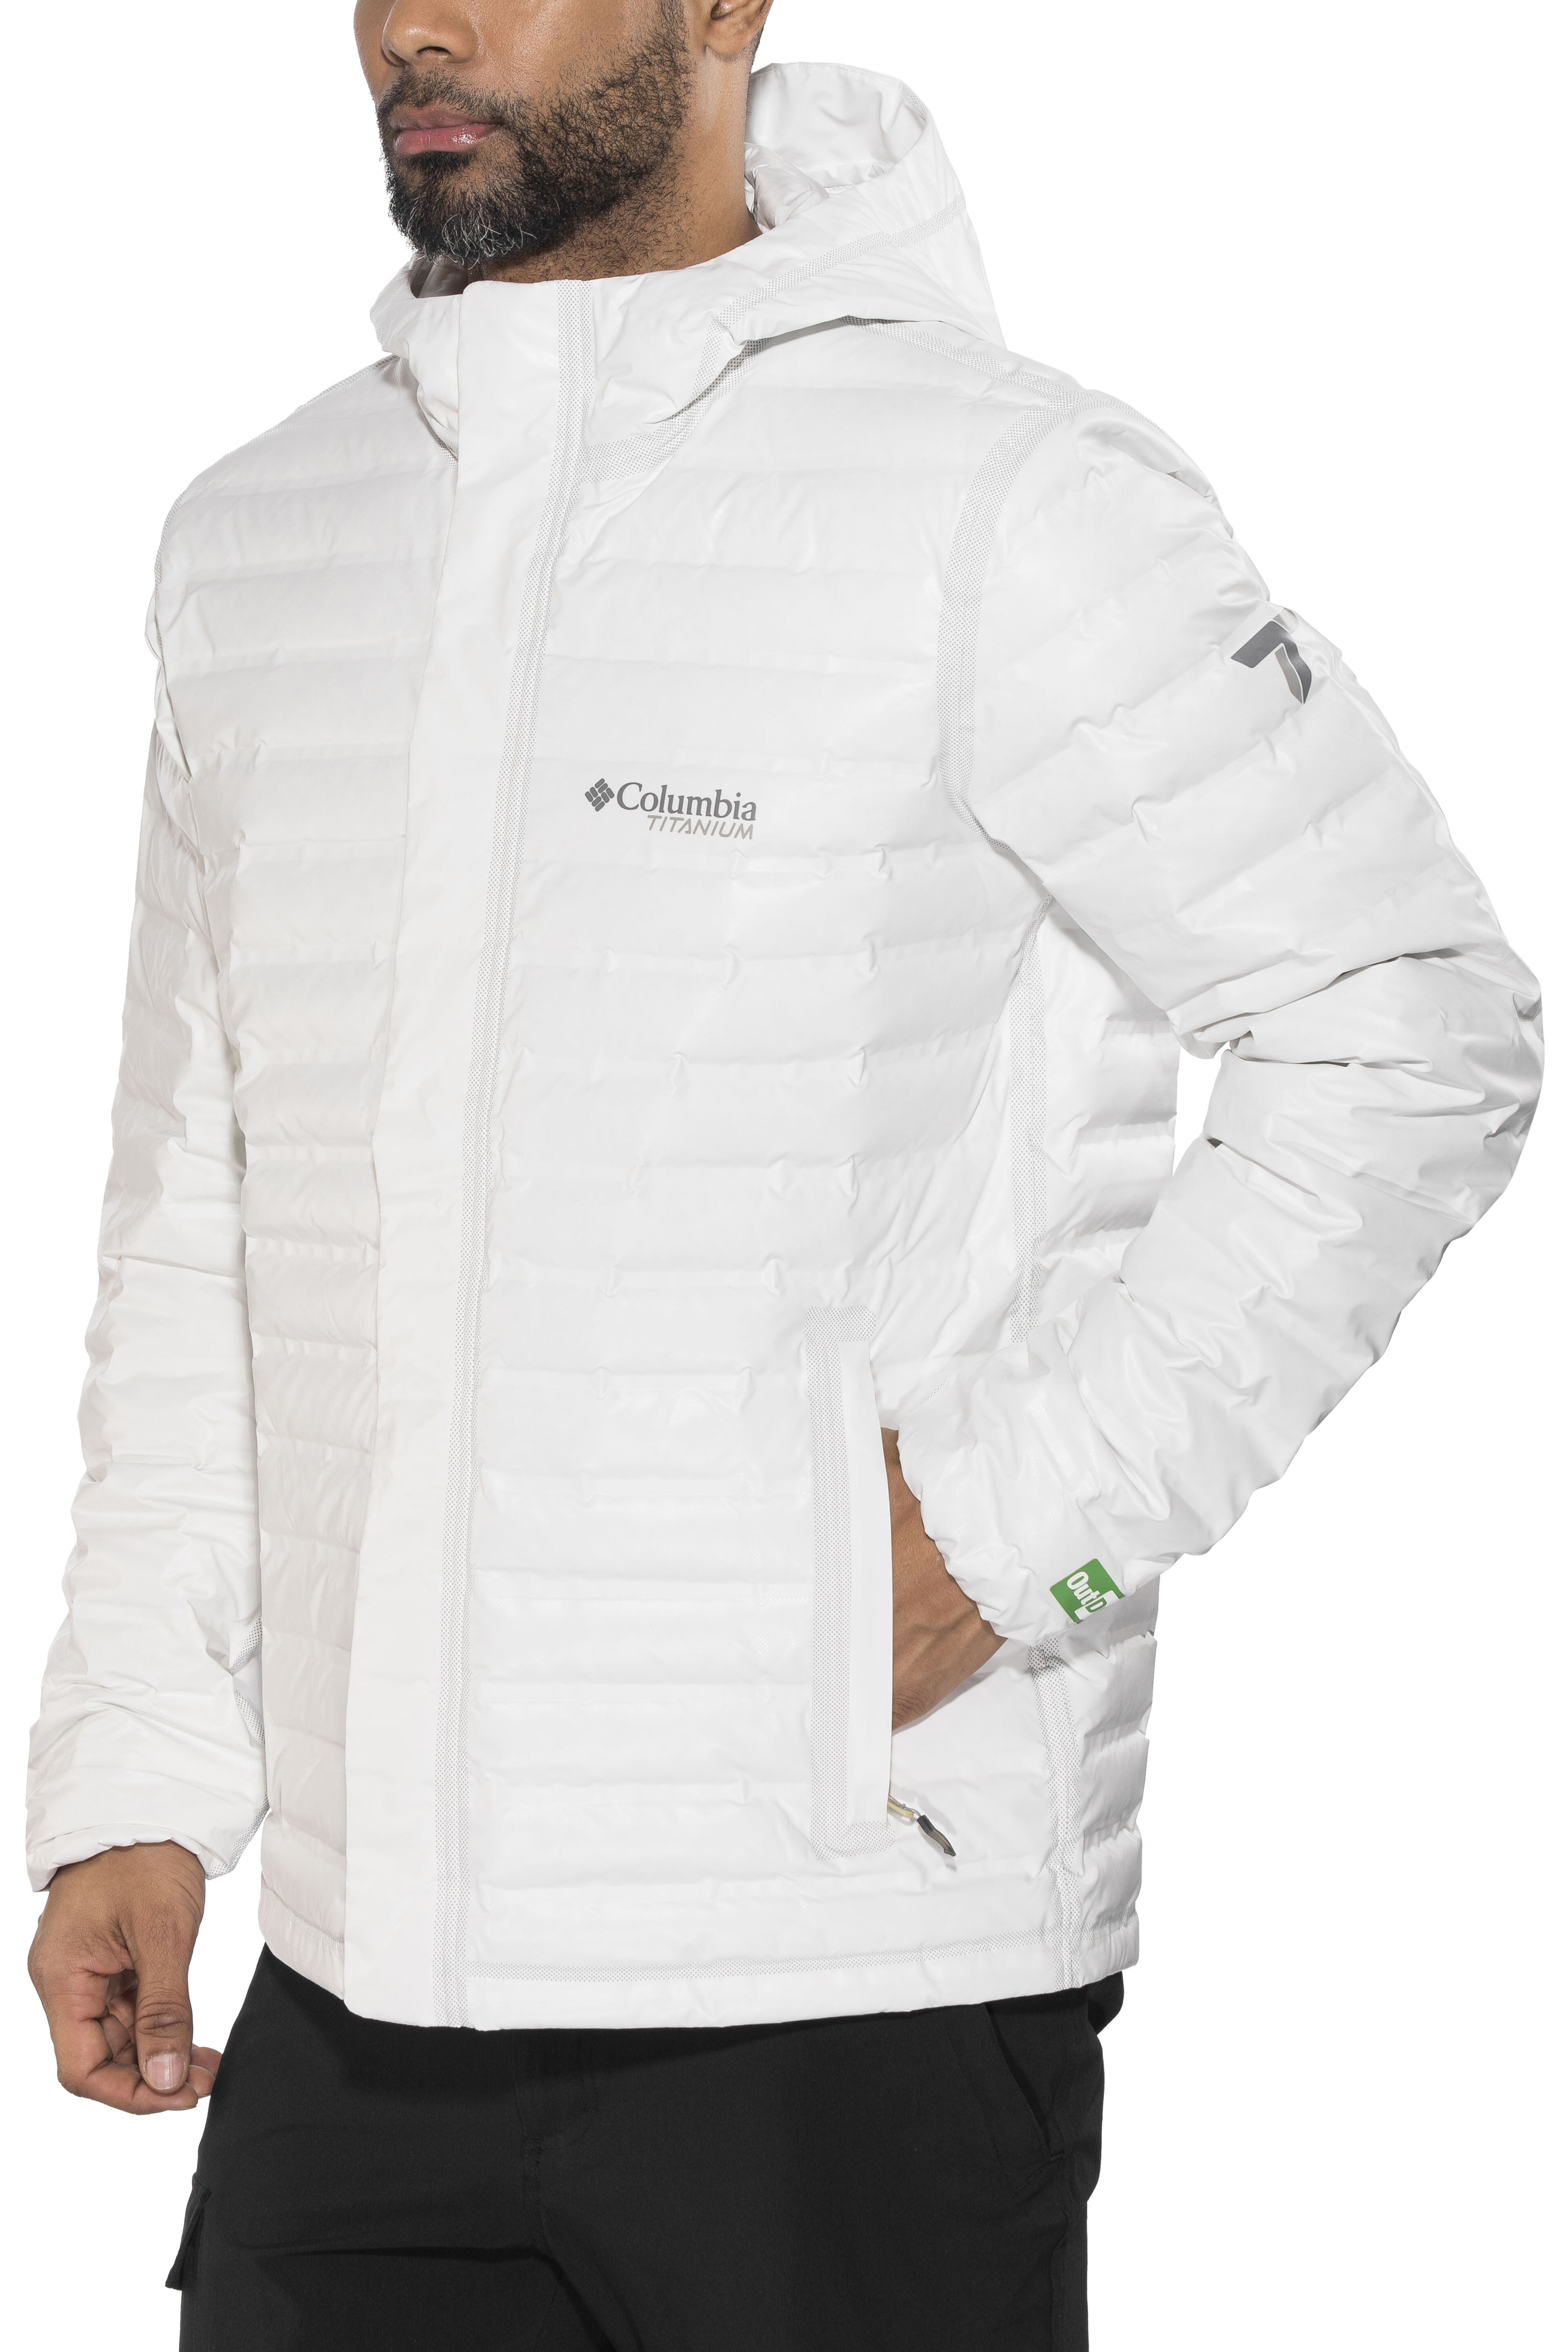 Columbia Outdry Ex Eco Down Jacket Men White Undyed At